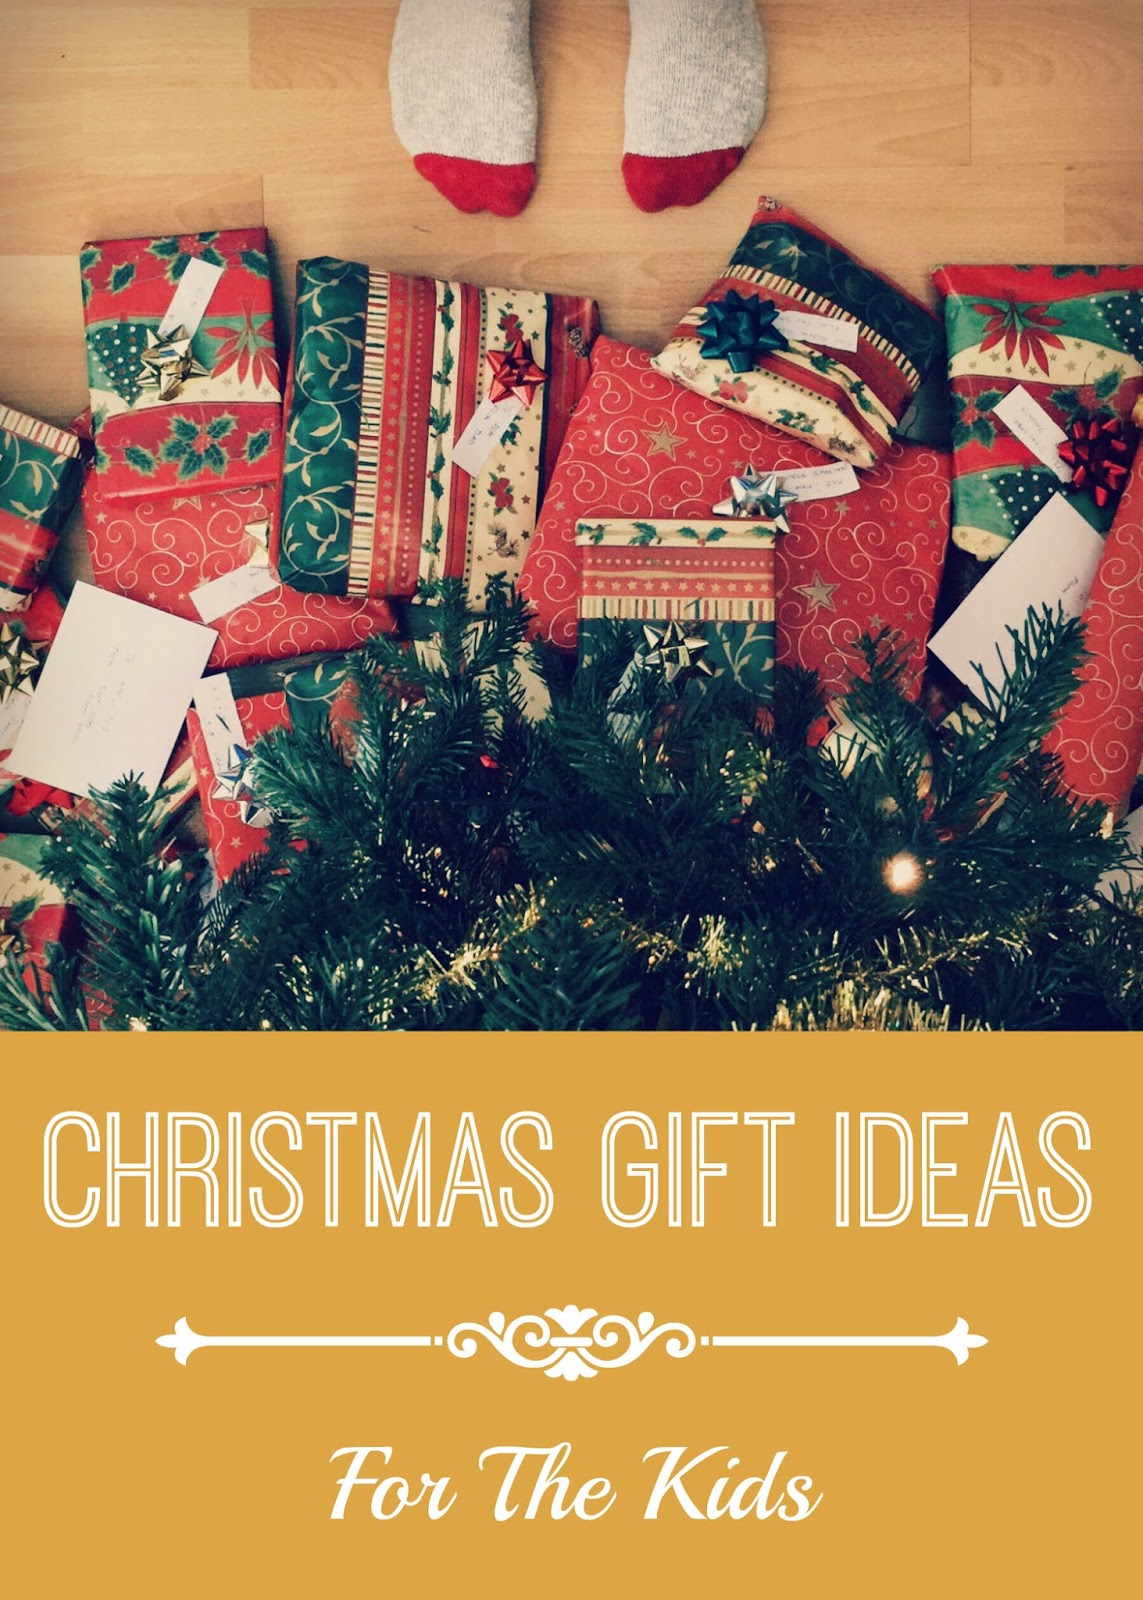 Christmas gift ideas for the kids